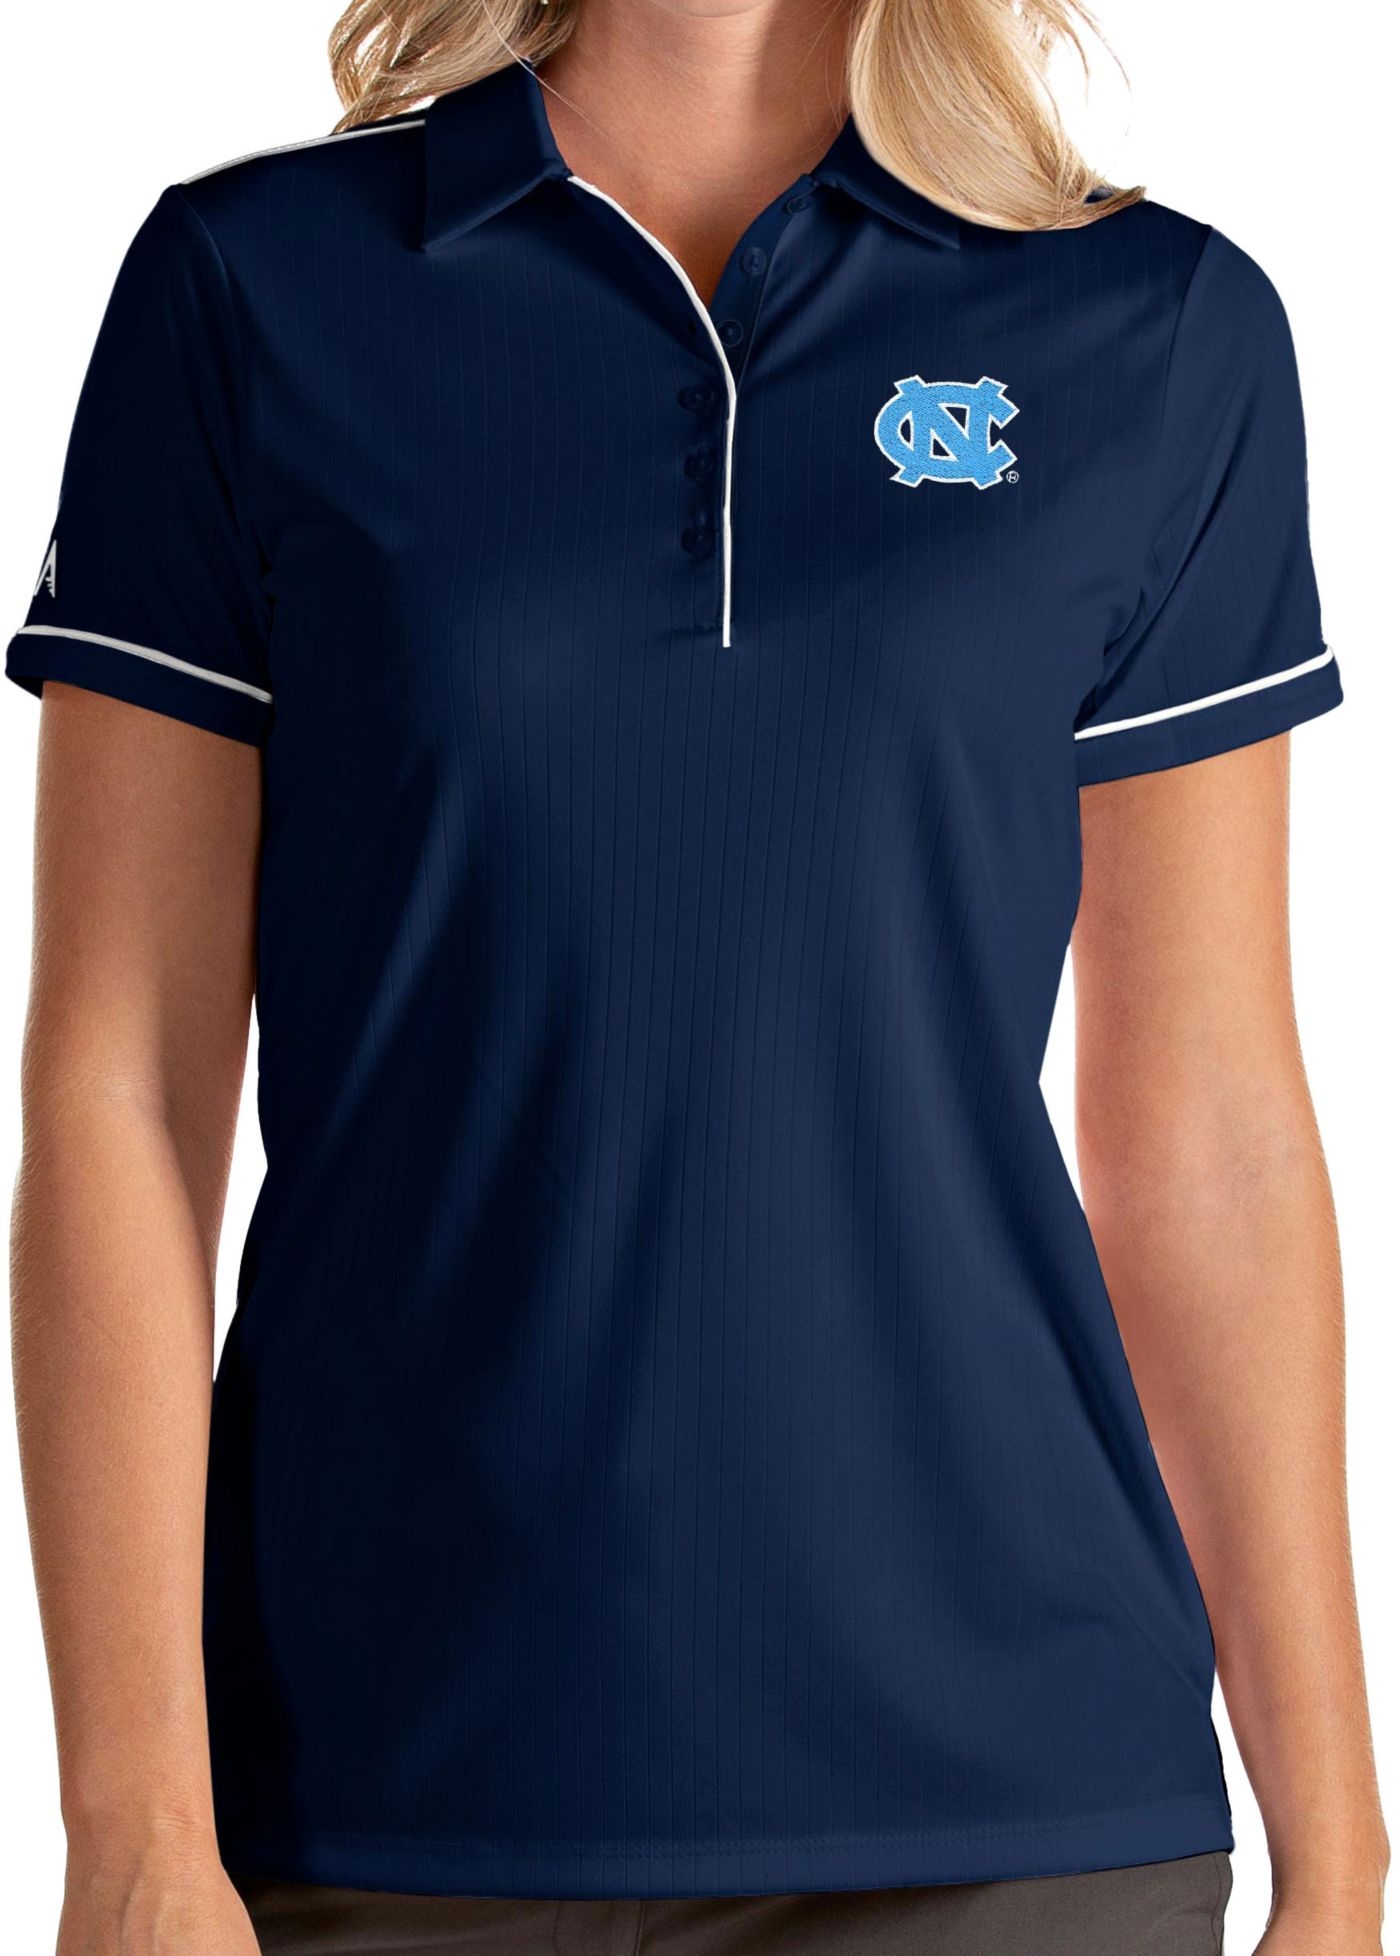 Antigua Women's North Carolina Tar Heels Navy Salute Performance Polo